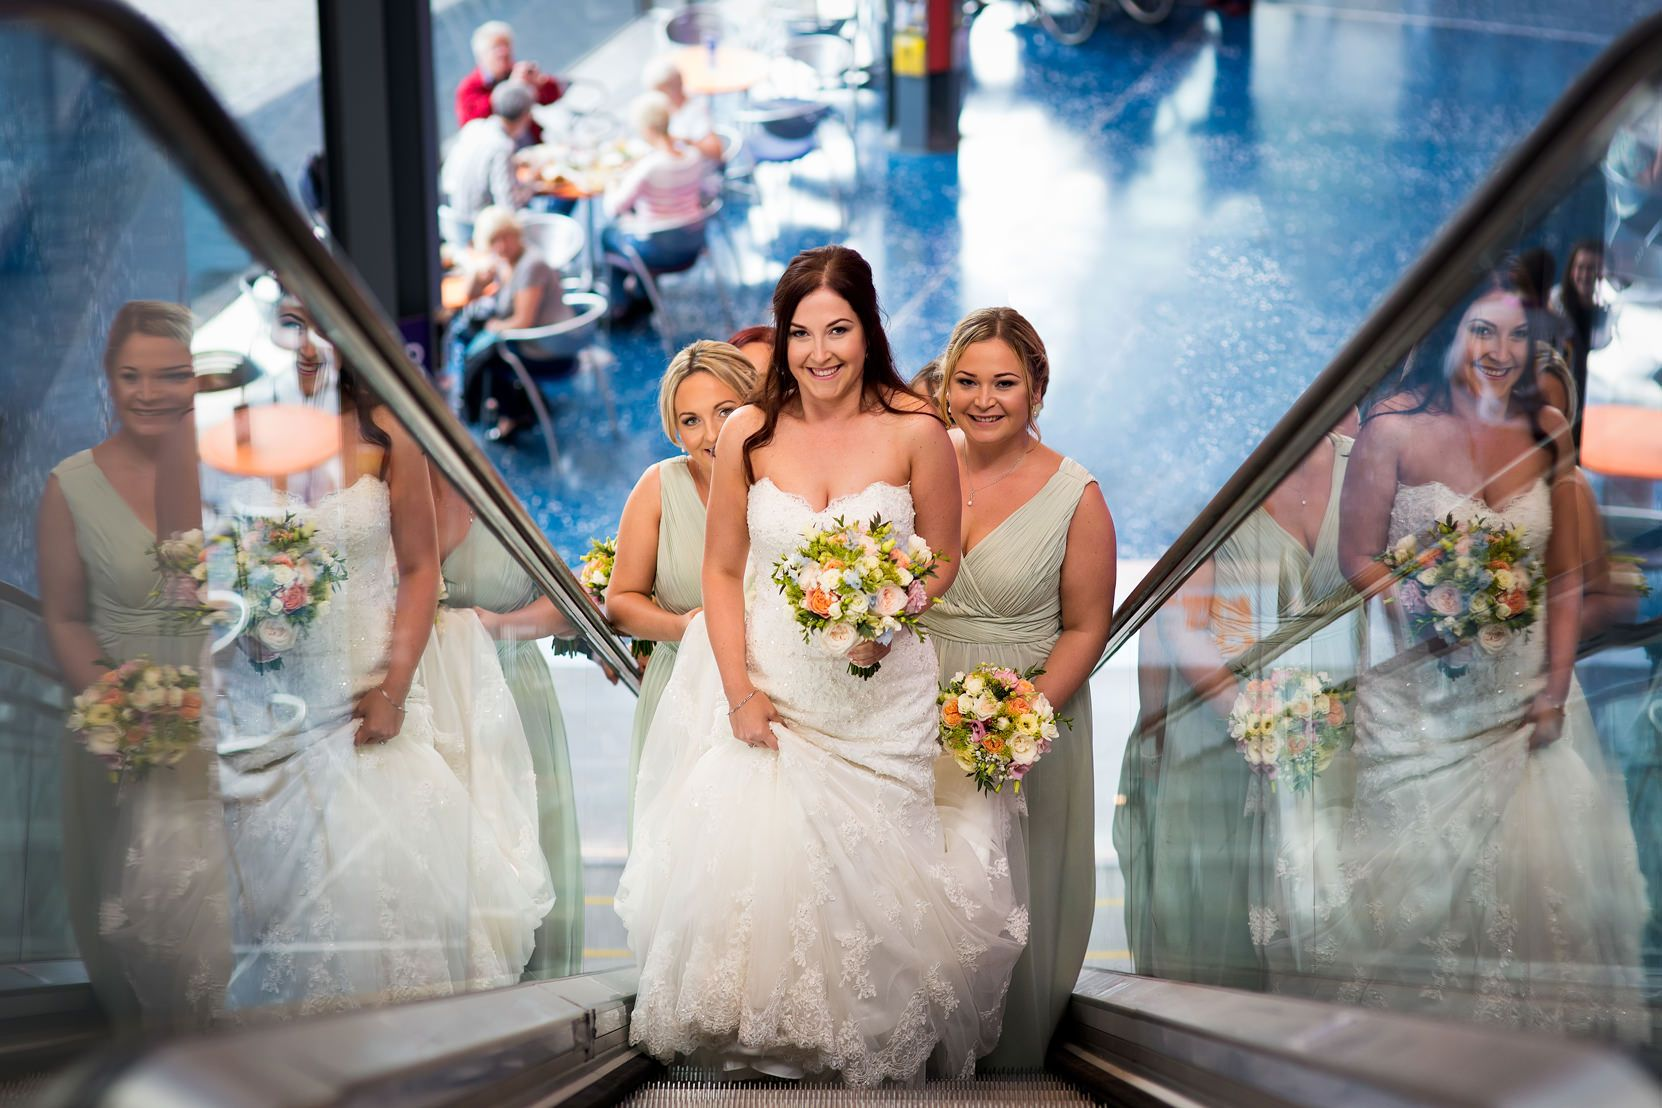 A bride in white dress travels up the escalator on her wedding day at The Lowry in Manchester with her bridesmaids